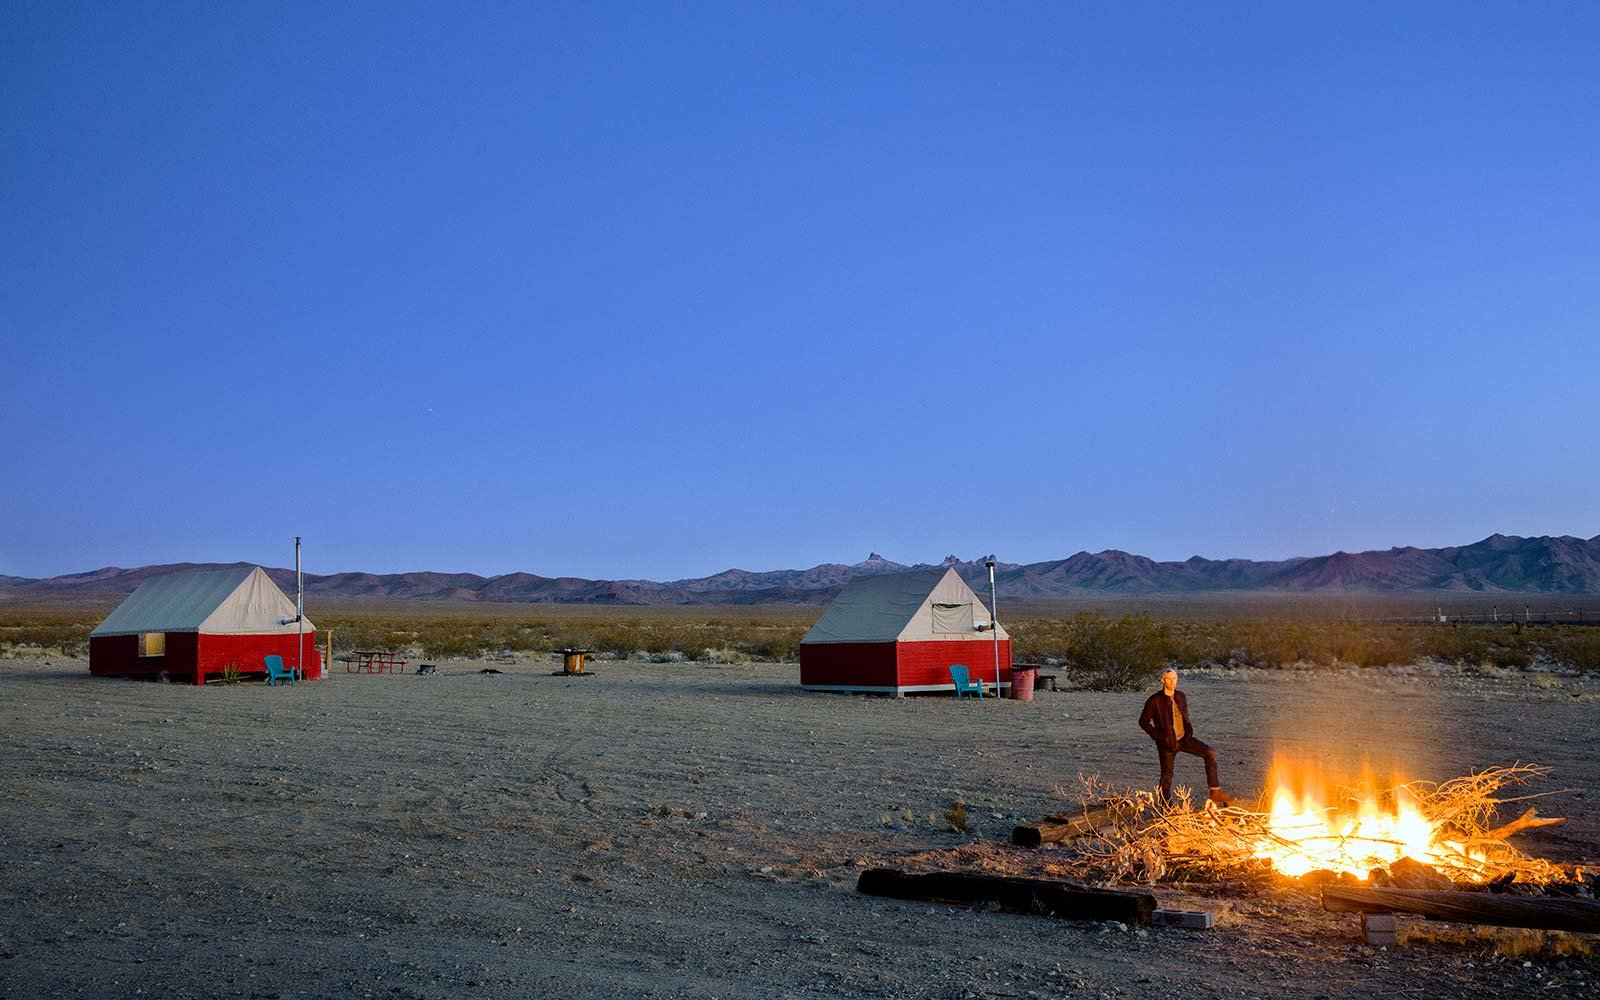 Ghost town in the Mojave Desert